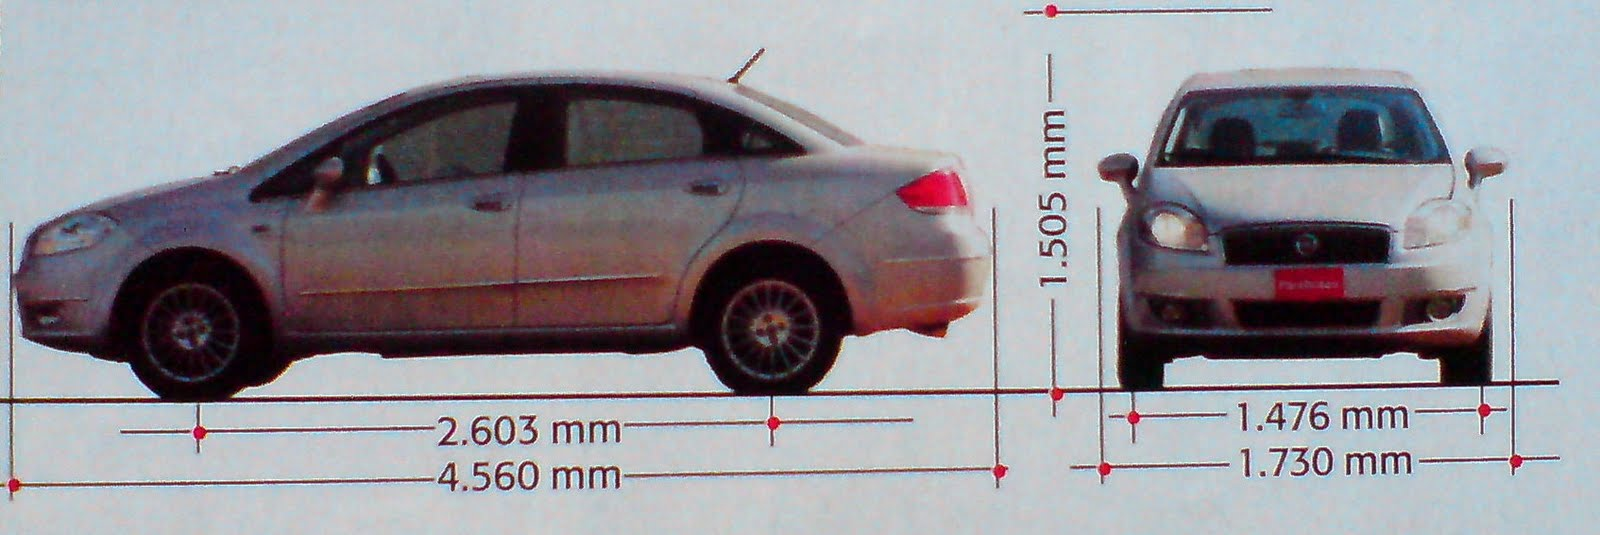 Prueba fiat linea 1 9 16v essence dualogic testeados for Dimensiones fiat idea